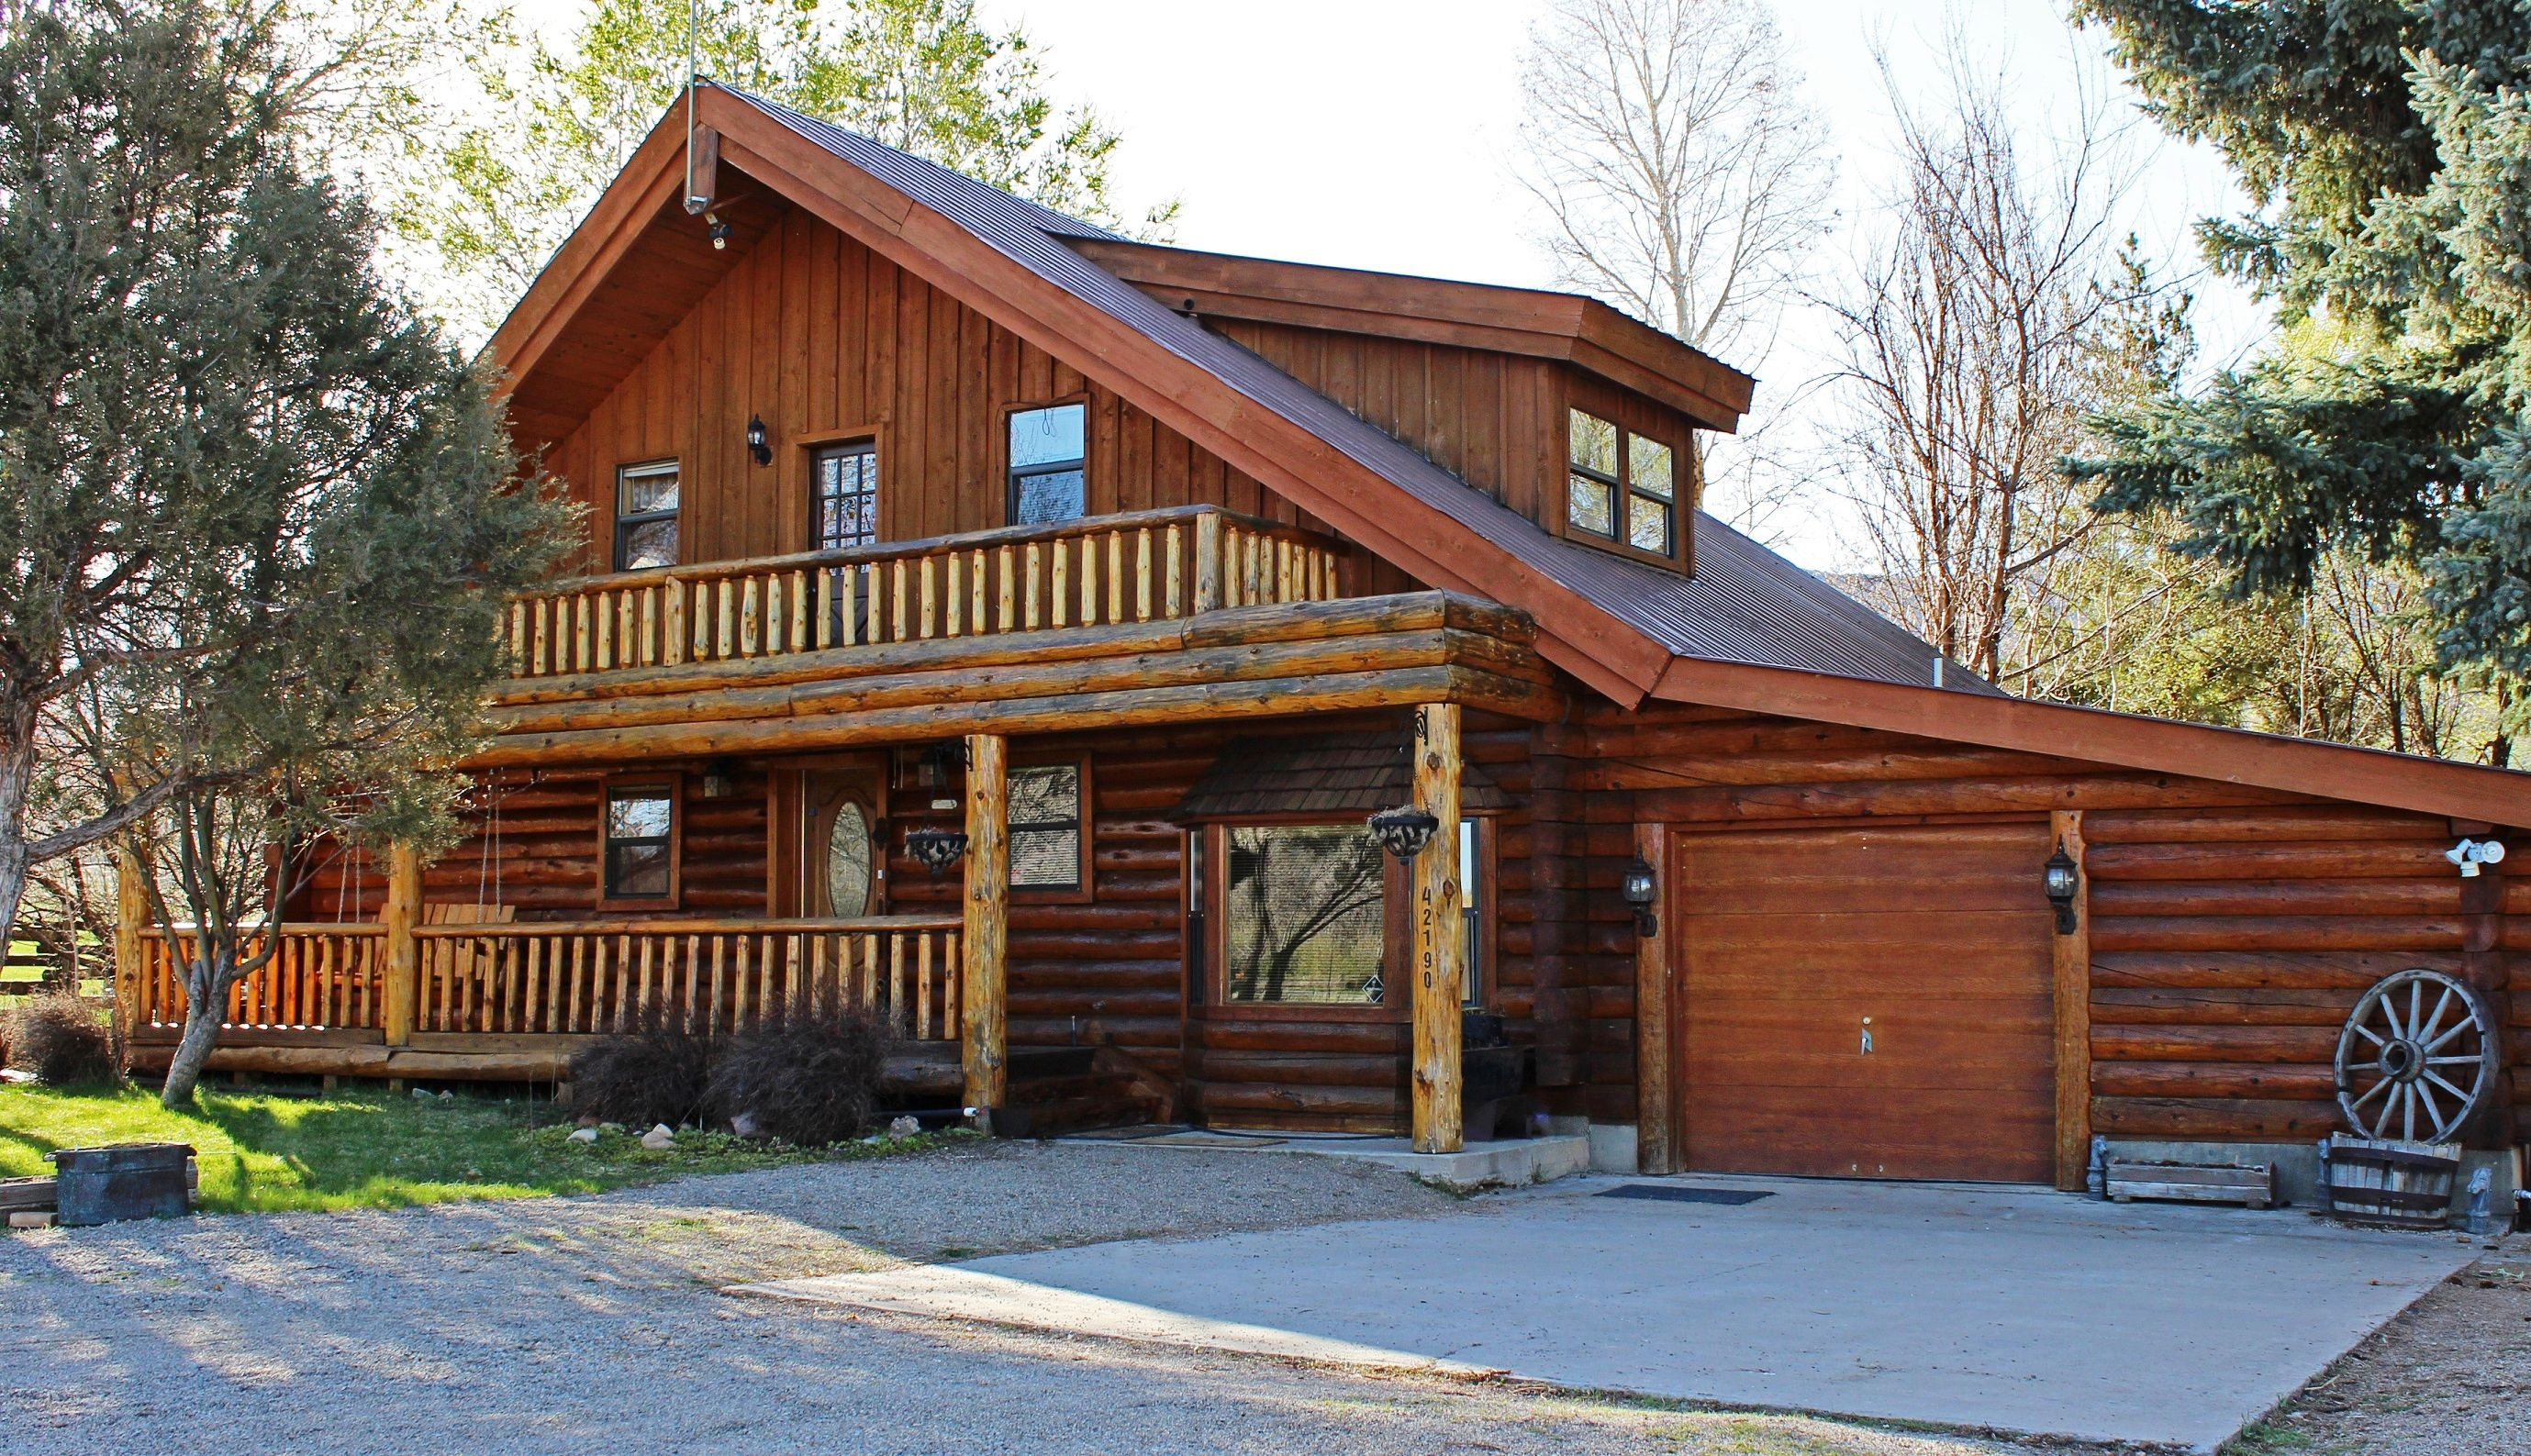 acreage cabins in county for co montrose colorado pictures sale search with homes acreag cabin western log